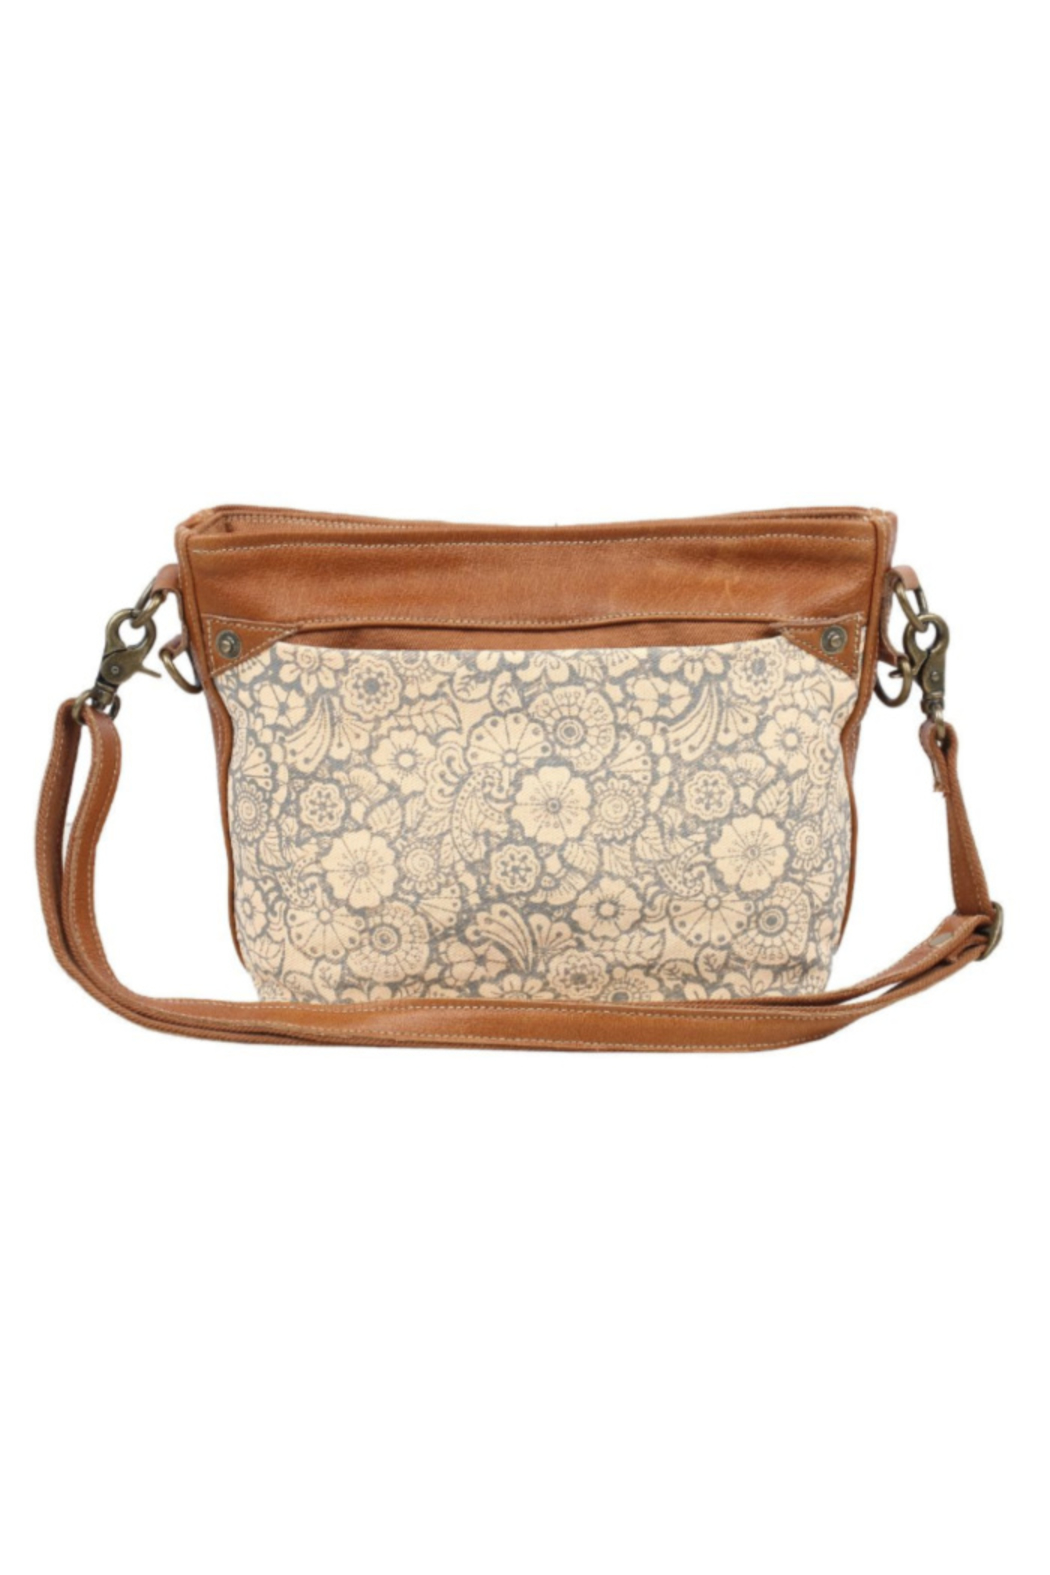 Myra Bags Peach Small Crossbody From Tennessee By Terri Leigh S Shoptiques Enjoy climate conscious ✈ delivery & free returns now, with over 100.000 designer styles to discover online. shoptiques